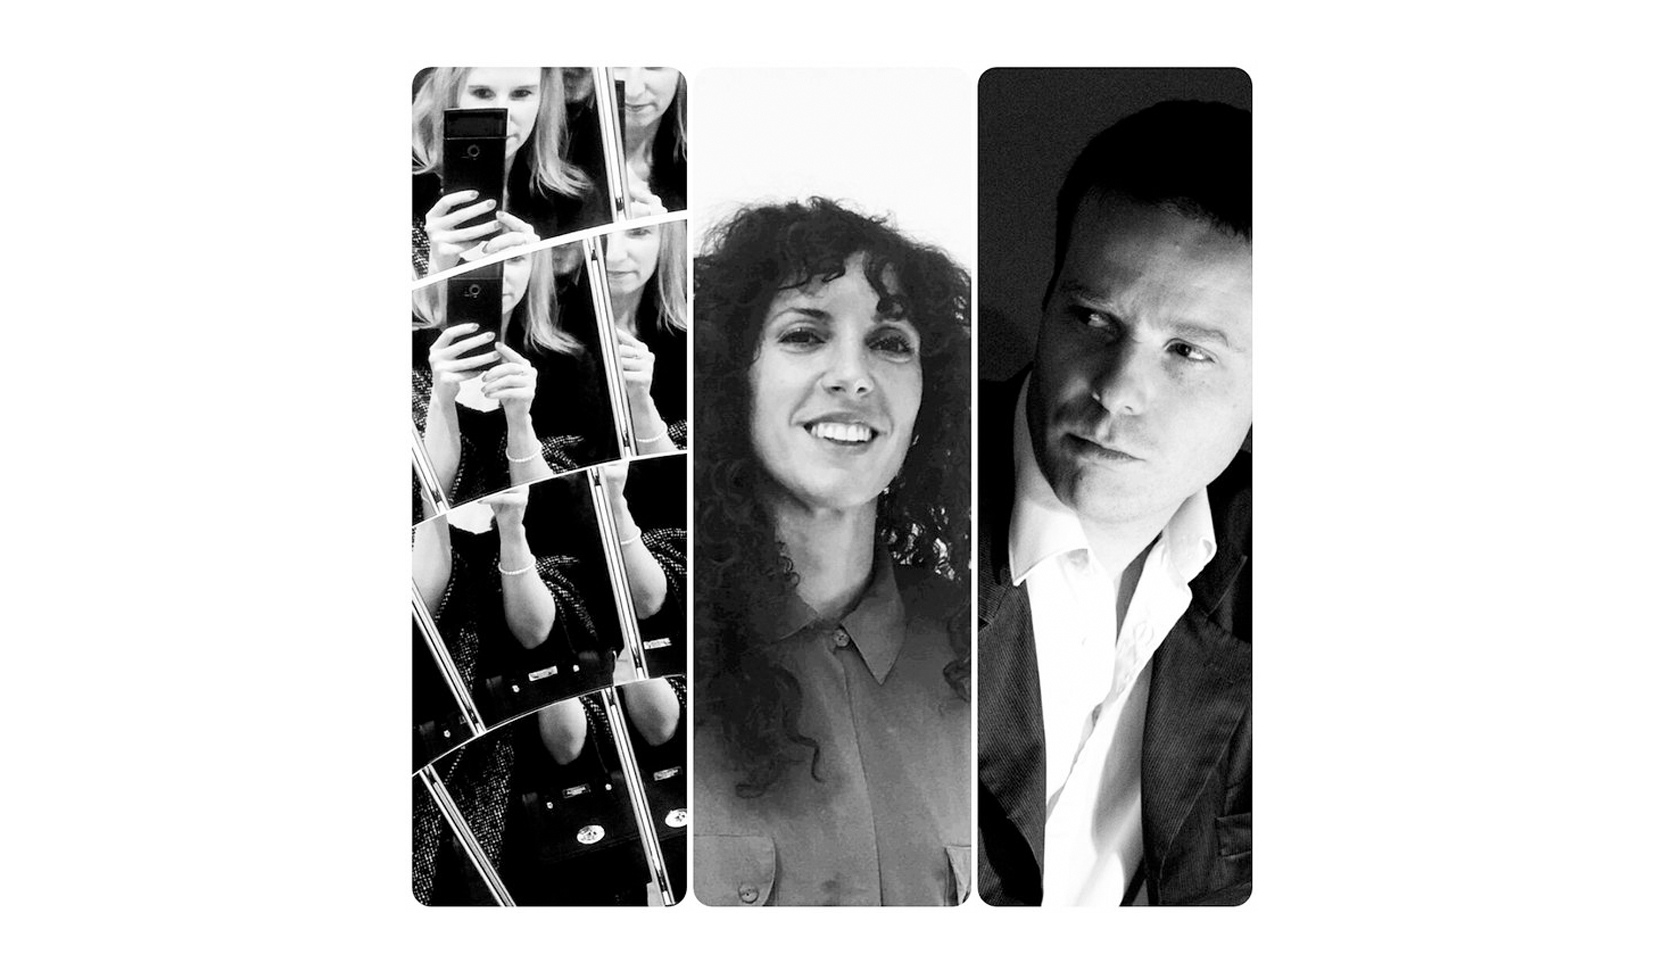 LIVING, with Tom McCarthy, Stella Bottai and Sara Upstone